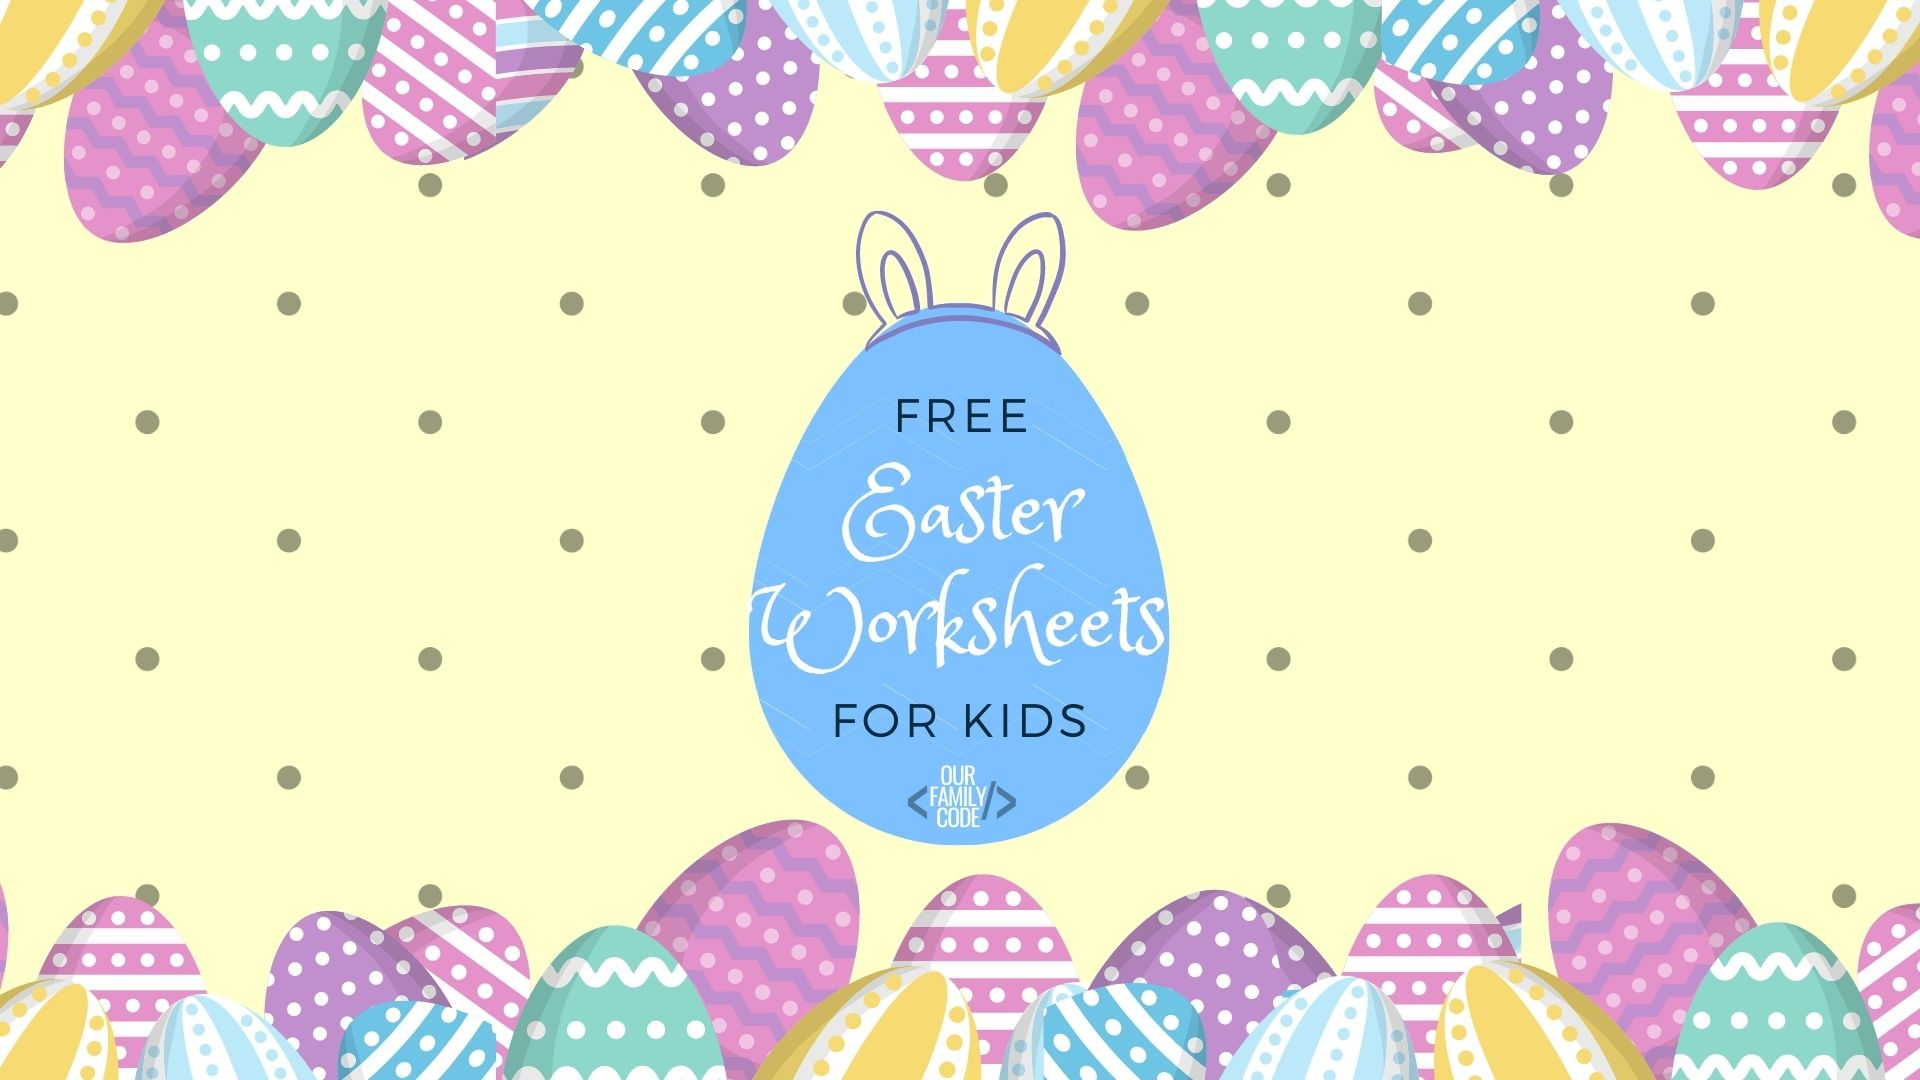 image about I Spy Printable Worksheets known as Obtain Absolutely free Printable Easter Worksheets for Little ones